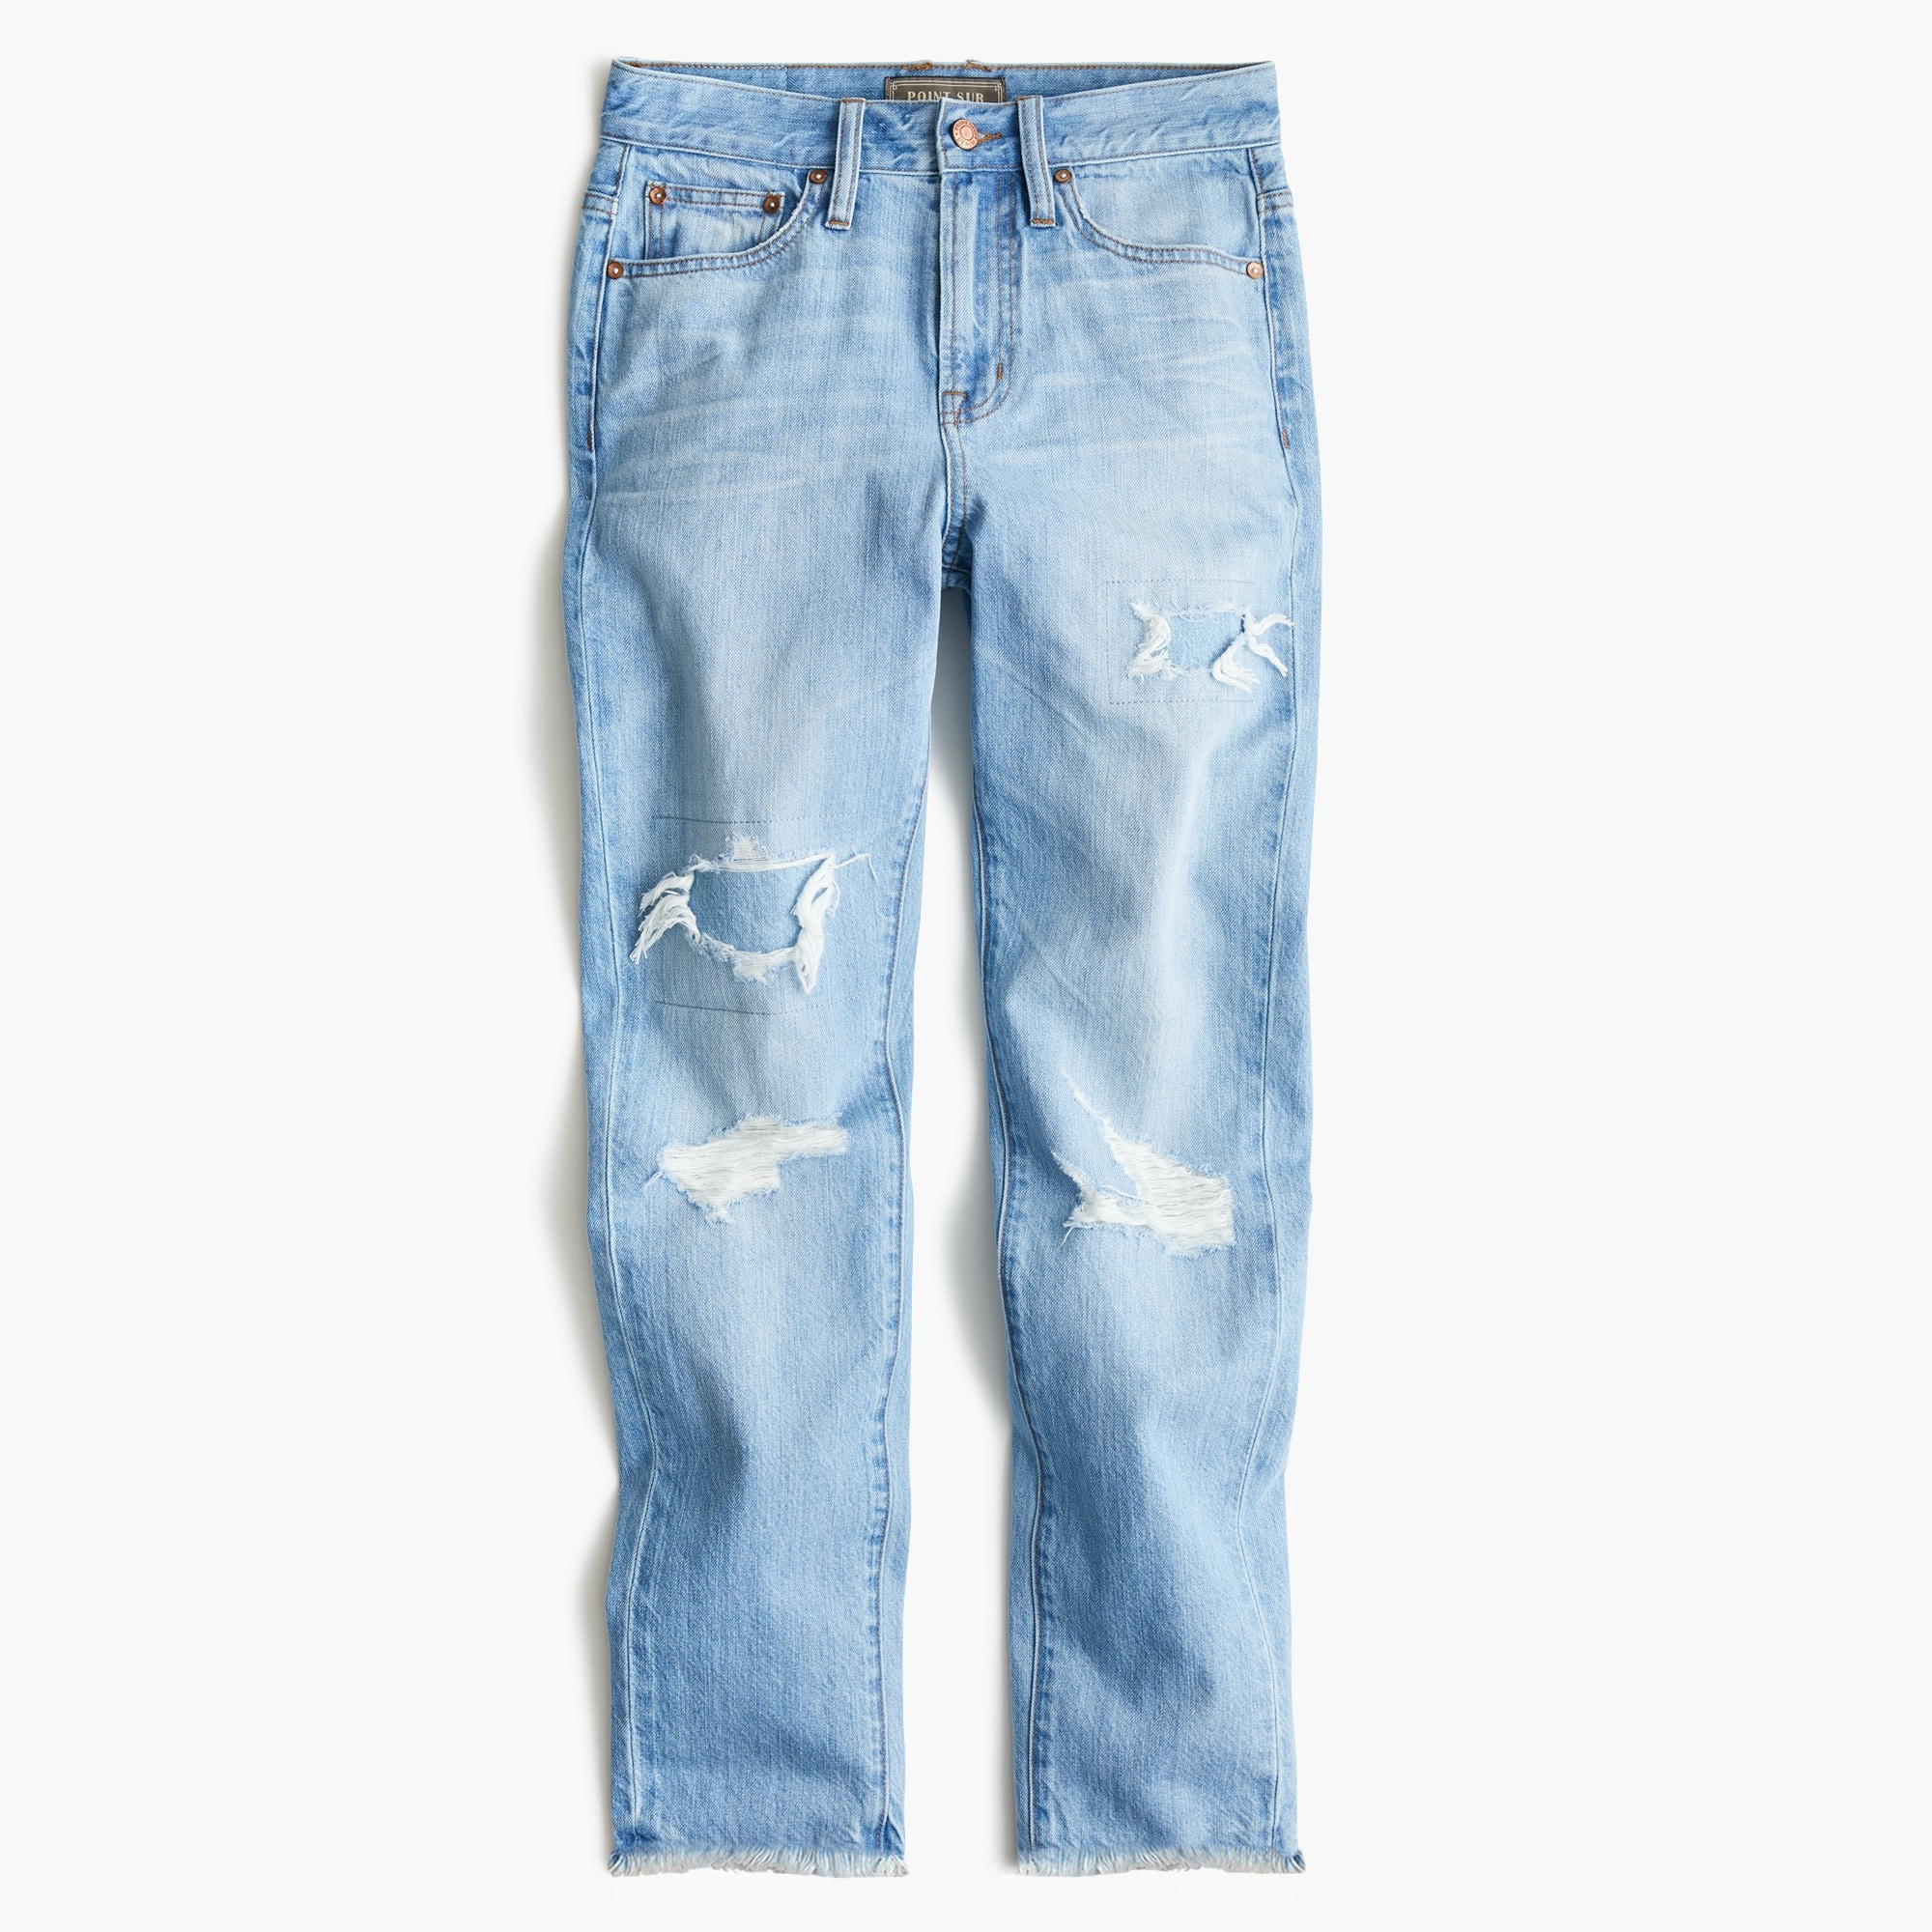 Image 2 for Tall Point Sur high-rise retro straight jean in light wash